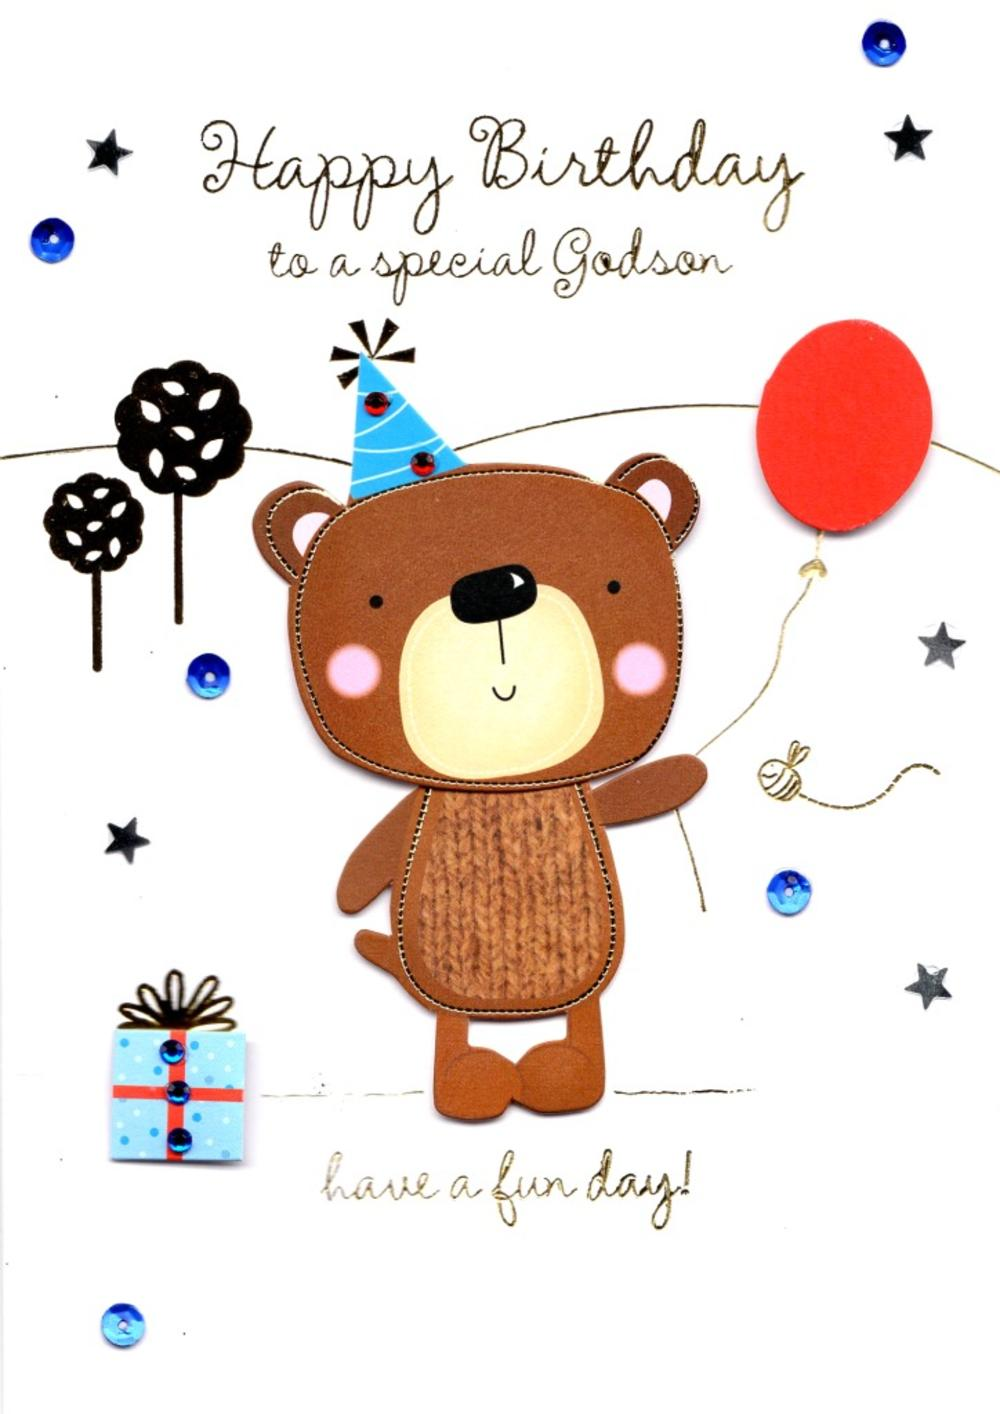 Special godson handmade birthday greeting card cards love kates special godson handmade birthday greeting card m4hsunfo